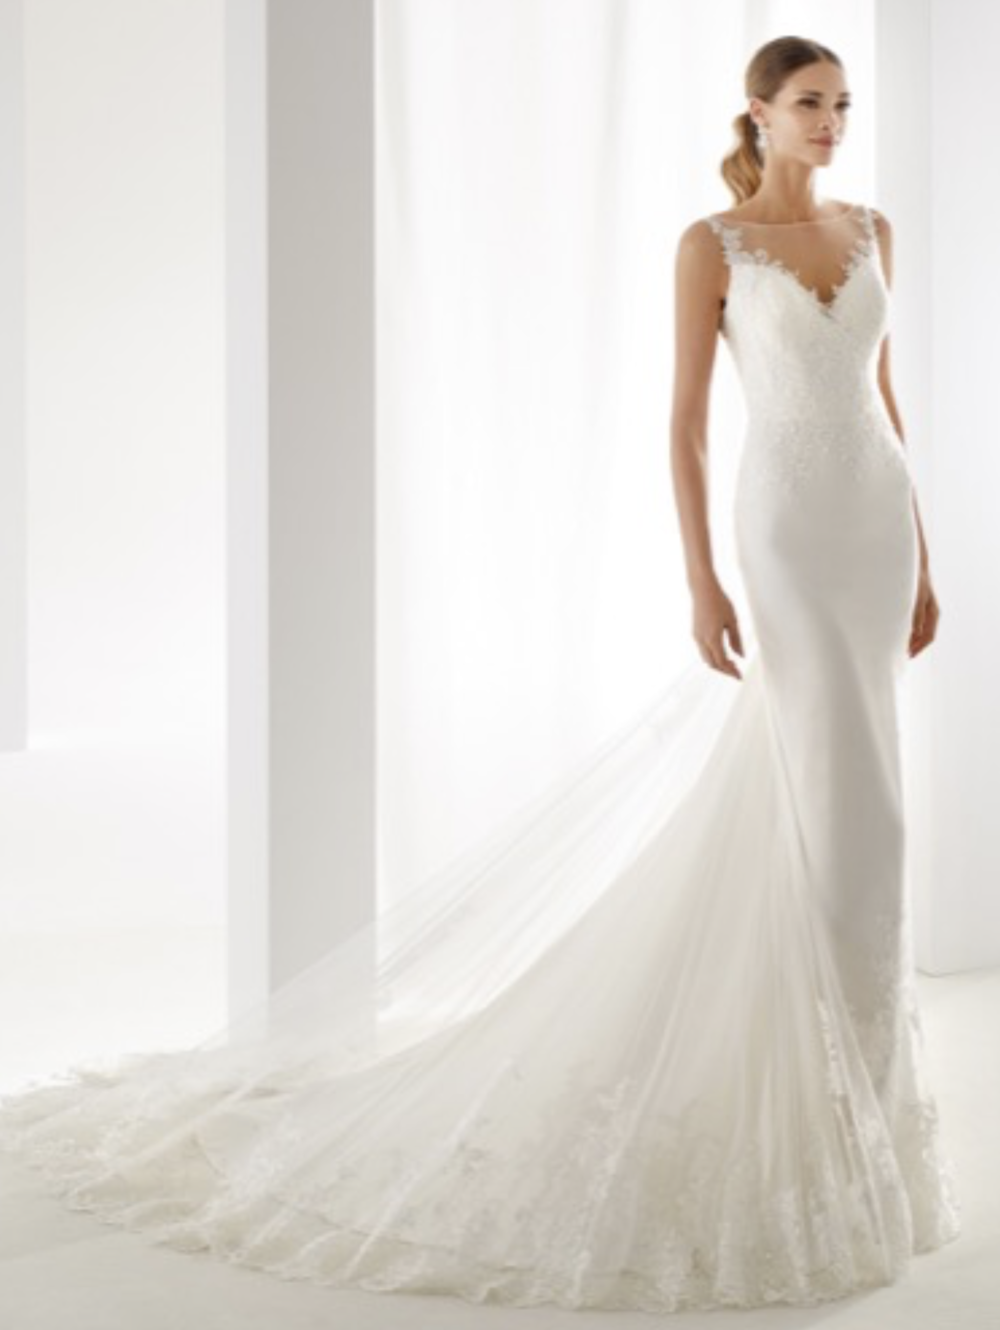 Platinum - Aurora Collection By NicoleNECKLINE TYPE: Sweetheart neckline with illusion.BACK DETAIL: High back.EMBELLISHMENT DETAIL: Hand beaded detailColour: Ivory